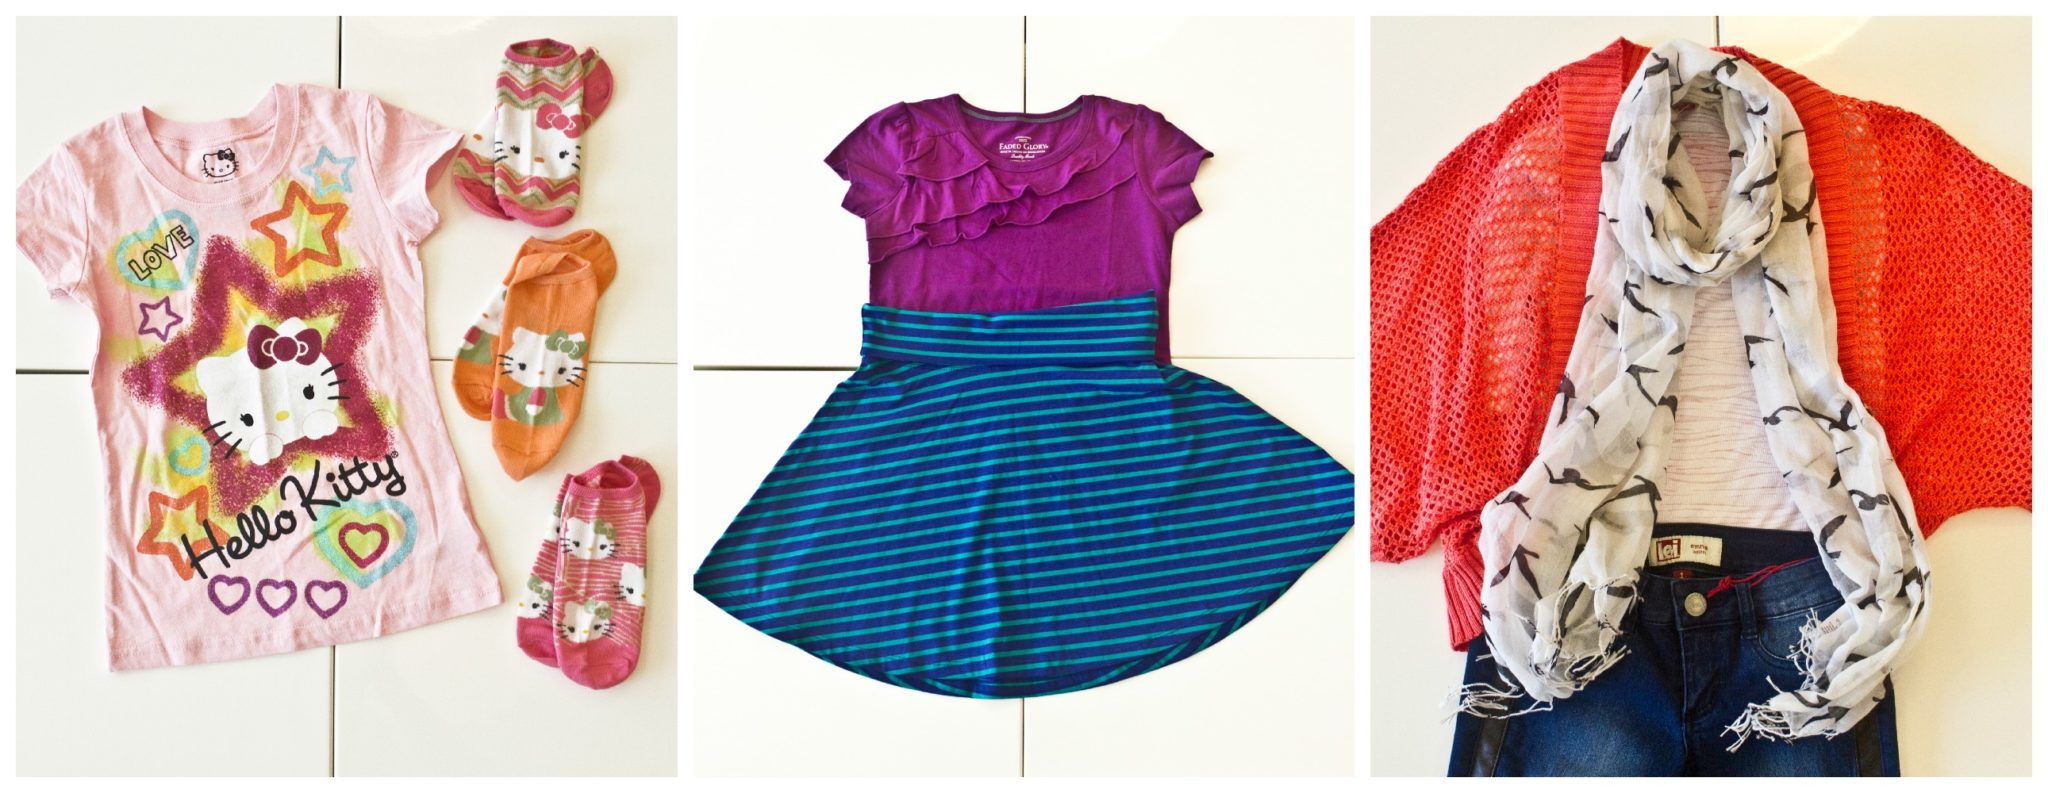 05ad3b8e629 A Fancy Girl Must - Back to School Shopping Tips from MomTrends ...